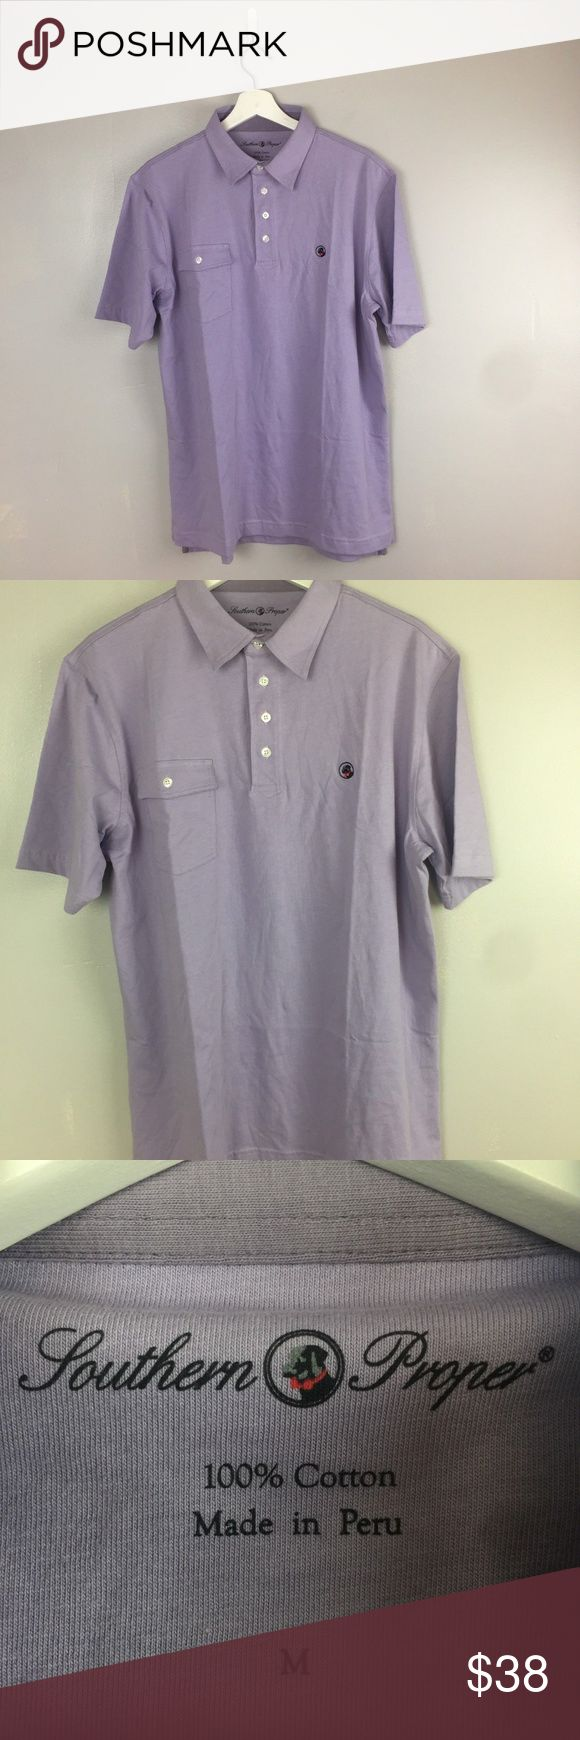 """SOUTHERN PROPER Medium Purple Polo Shirt #A1028 Southern Proper Medium Lavender Purple Tourney Pocket Polo Shirt NEW NWOT  approx. meas.   pit to pit 22.5"""" length 28"""" Southern Proper Dresses"""